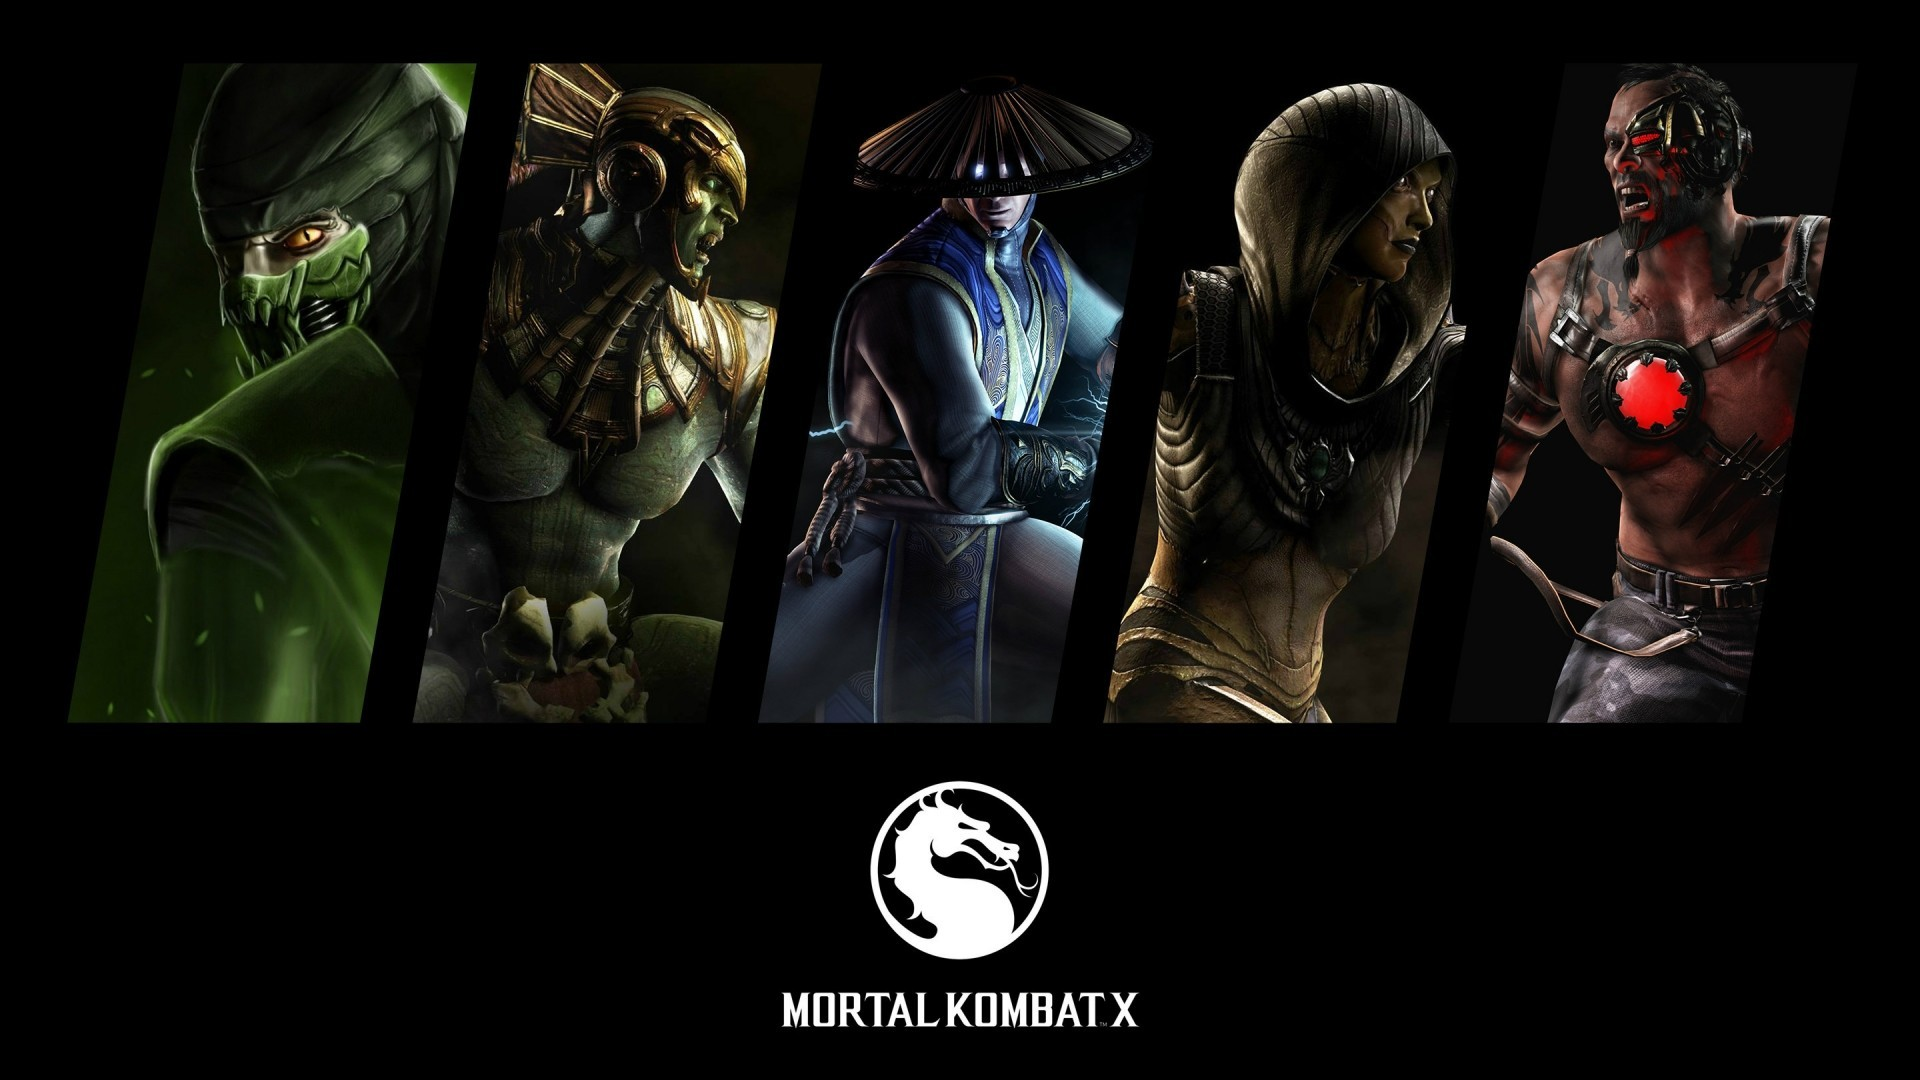 Free Cool Mortal Kombat Xl Chrome Extension Hd Wallpaper Theme Tab